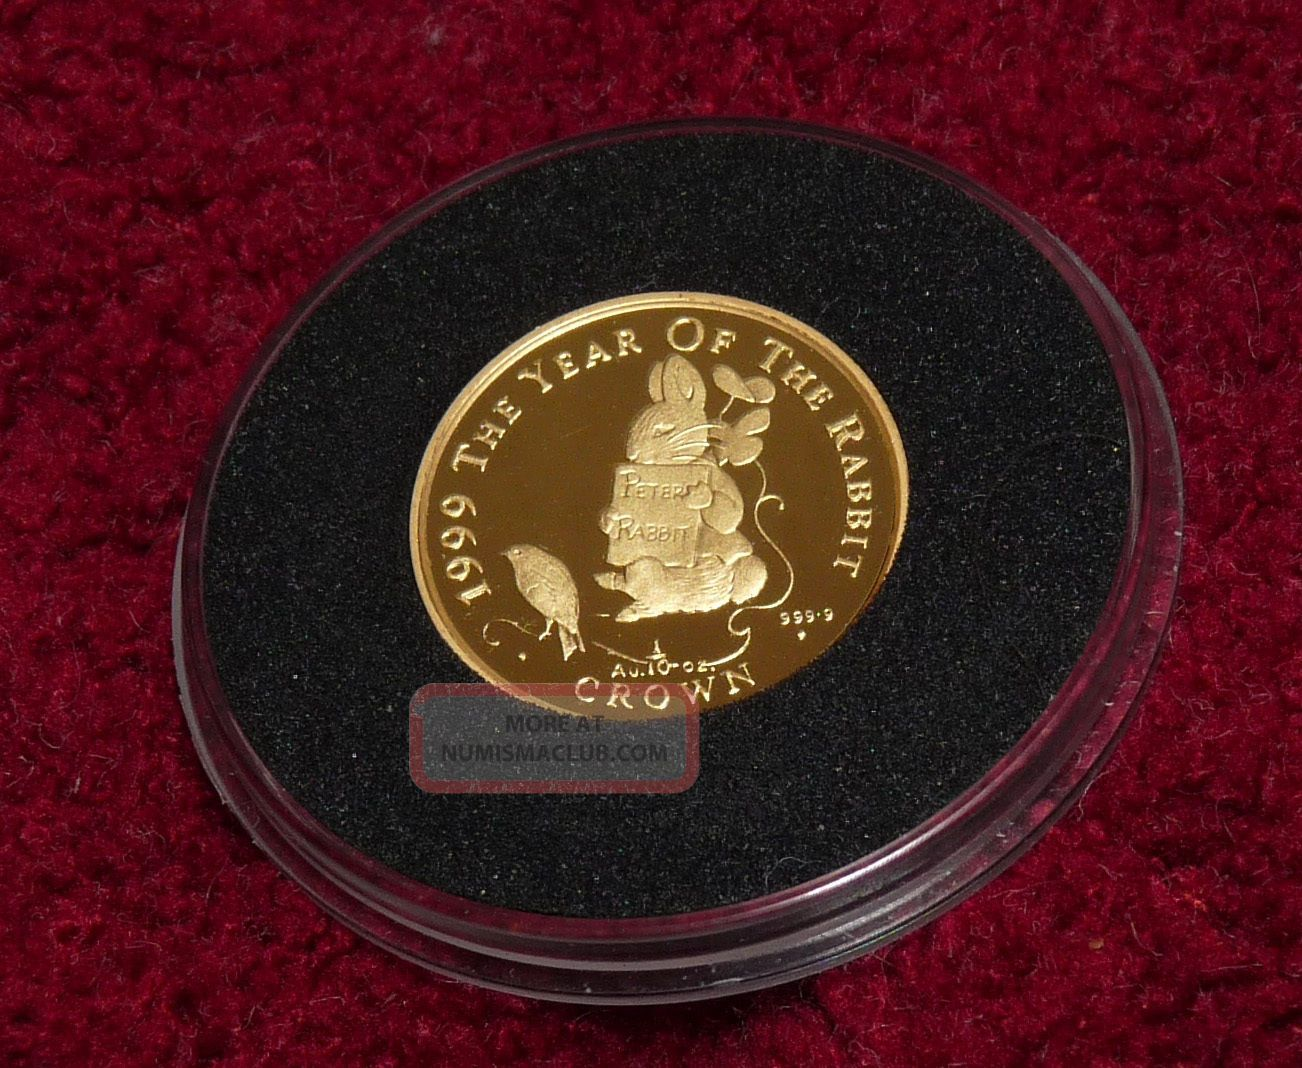 Uk Gibraltar 1999 Tale Of Peter Rabbit 1/10 Oz.  9999 Gold Proof Coin.  Pobjoy Europe photo